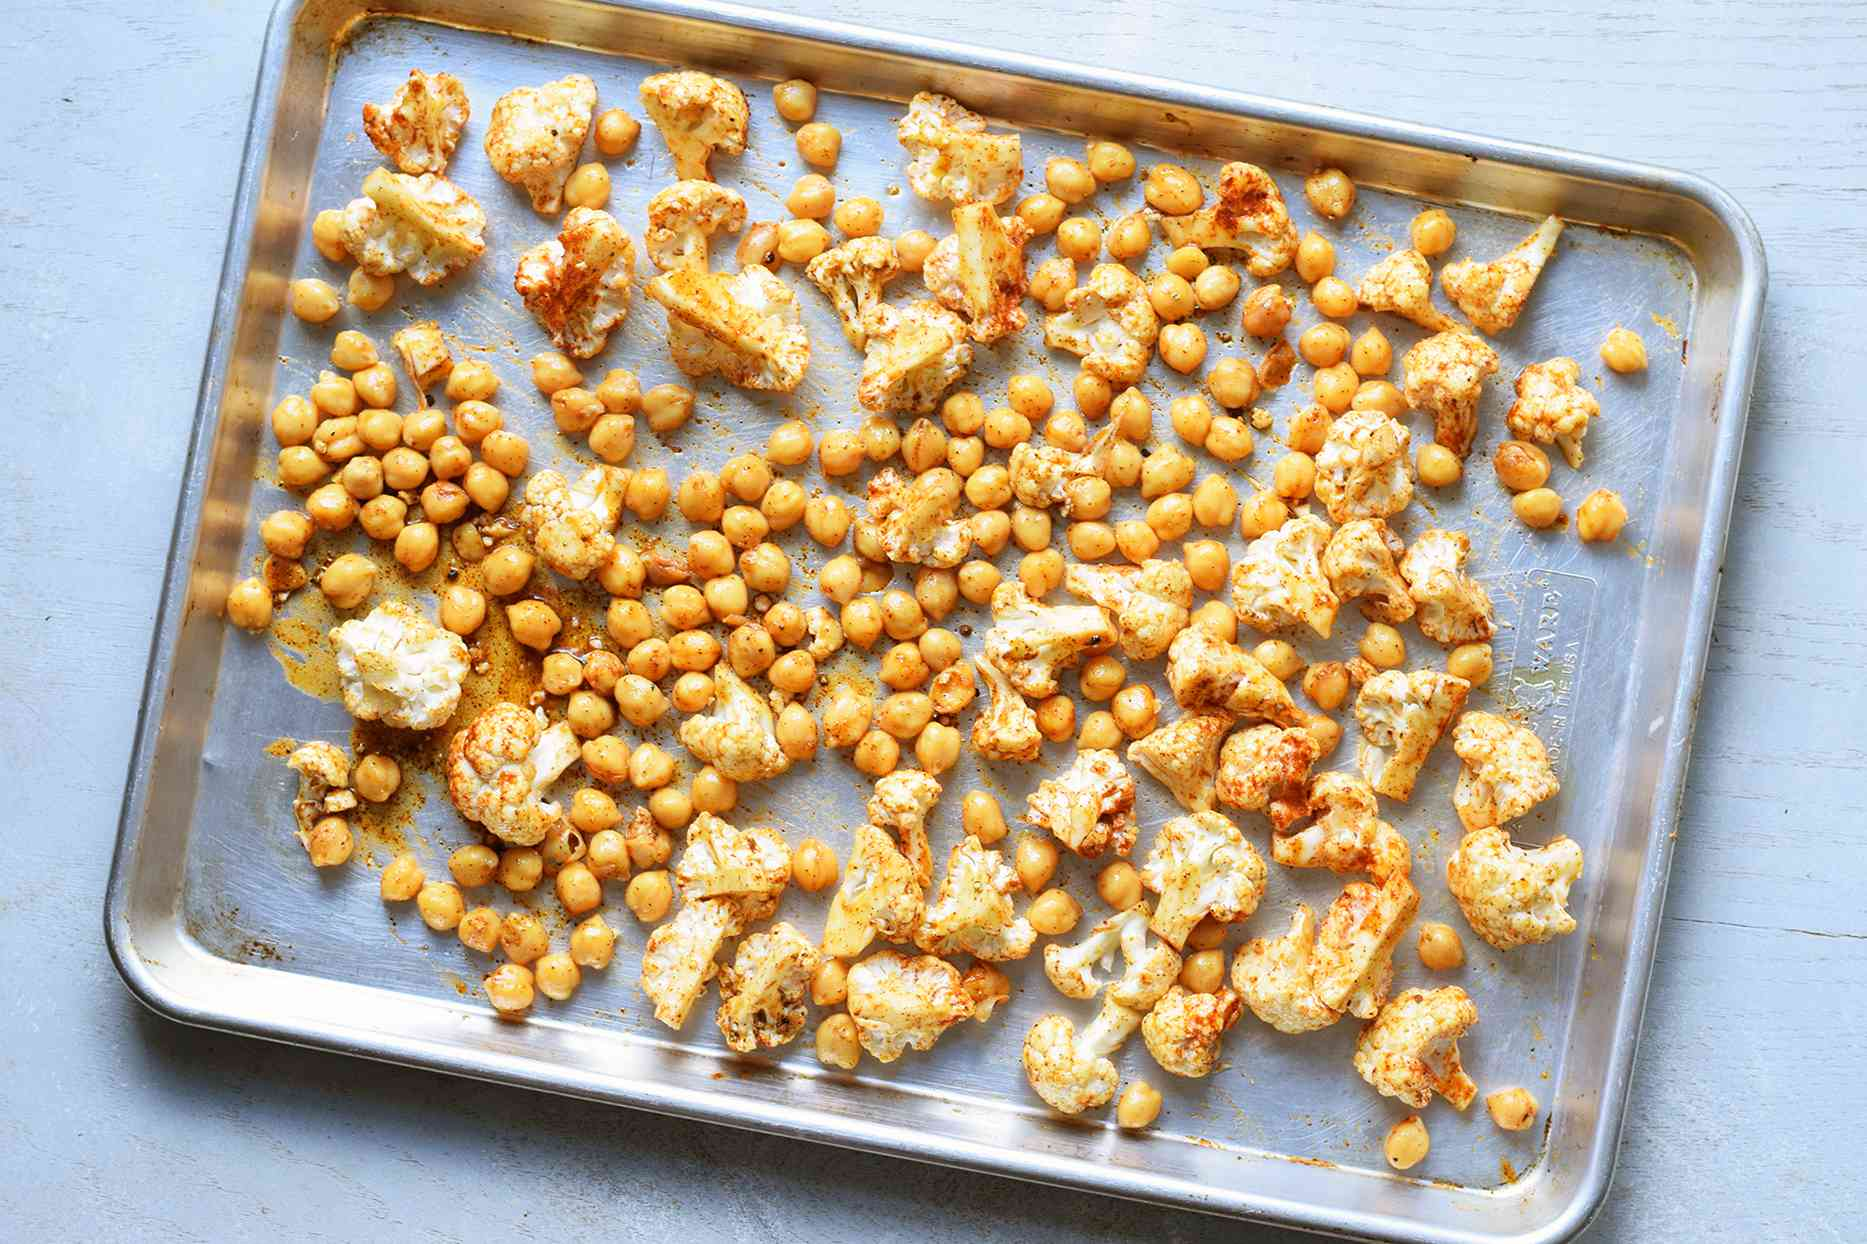 cauliflower and chickpeas spread on a sheet pan